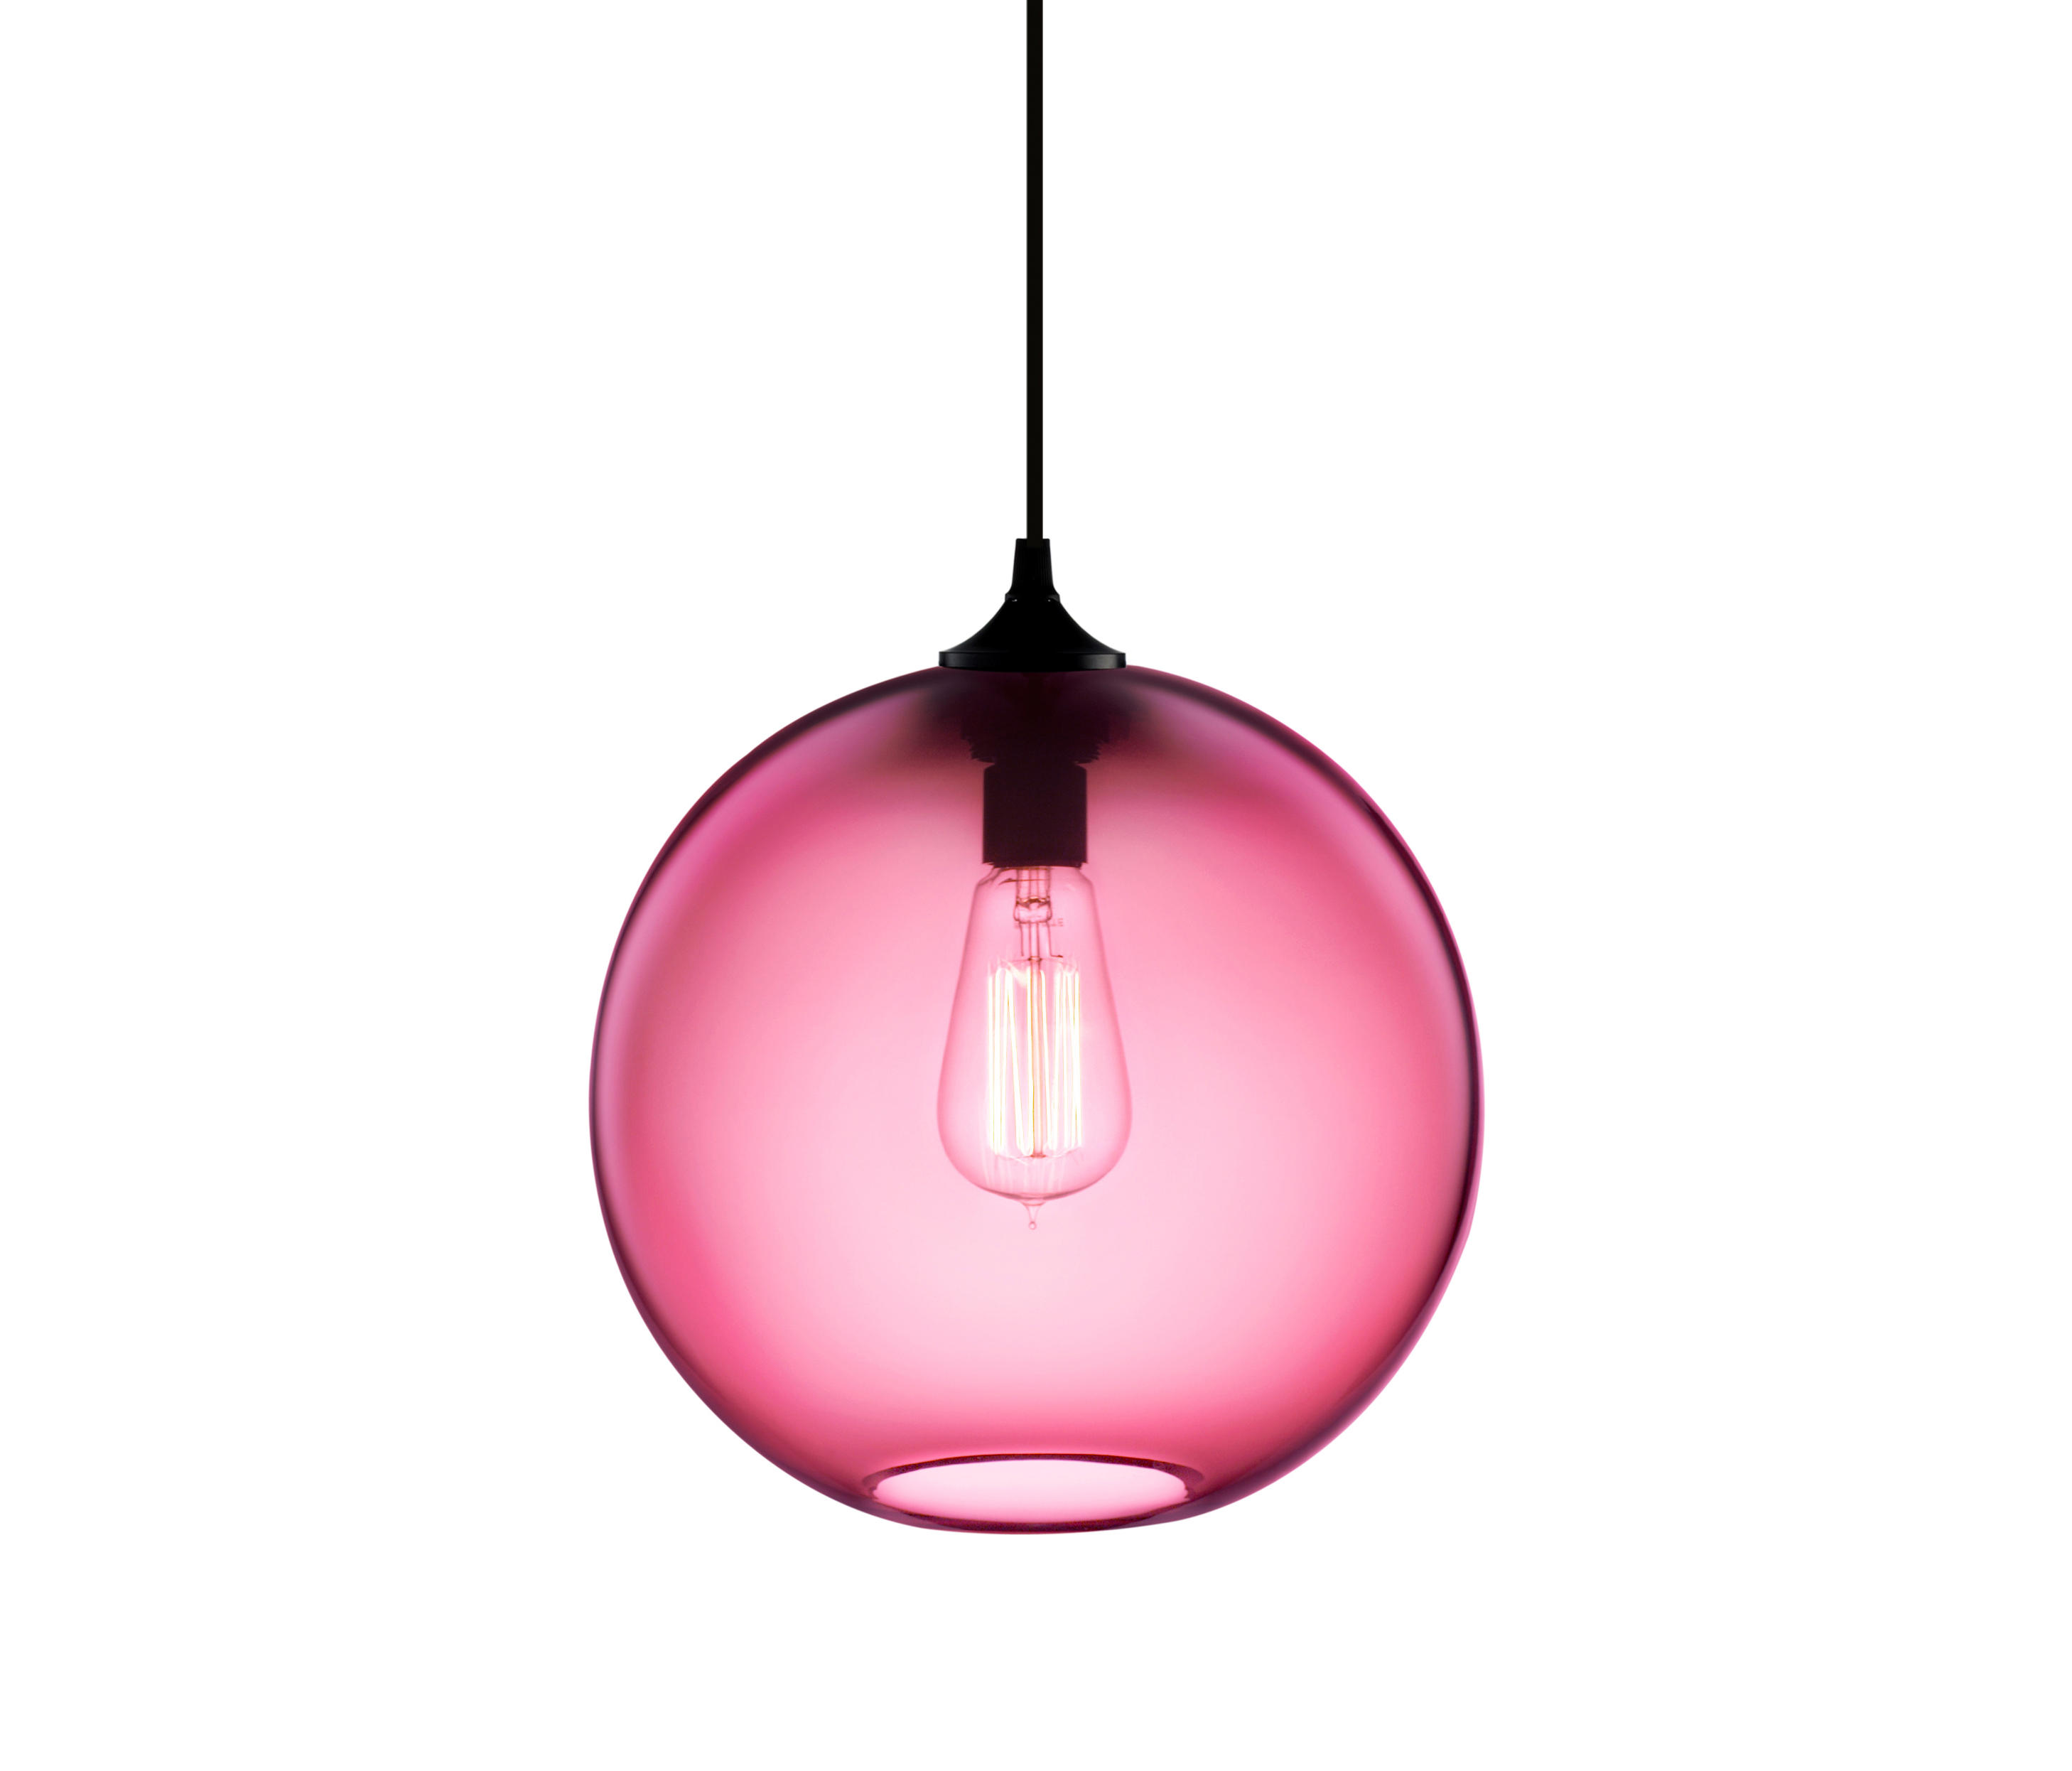 Solitaire Modern Pendant Light Suspended Lights From Niche